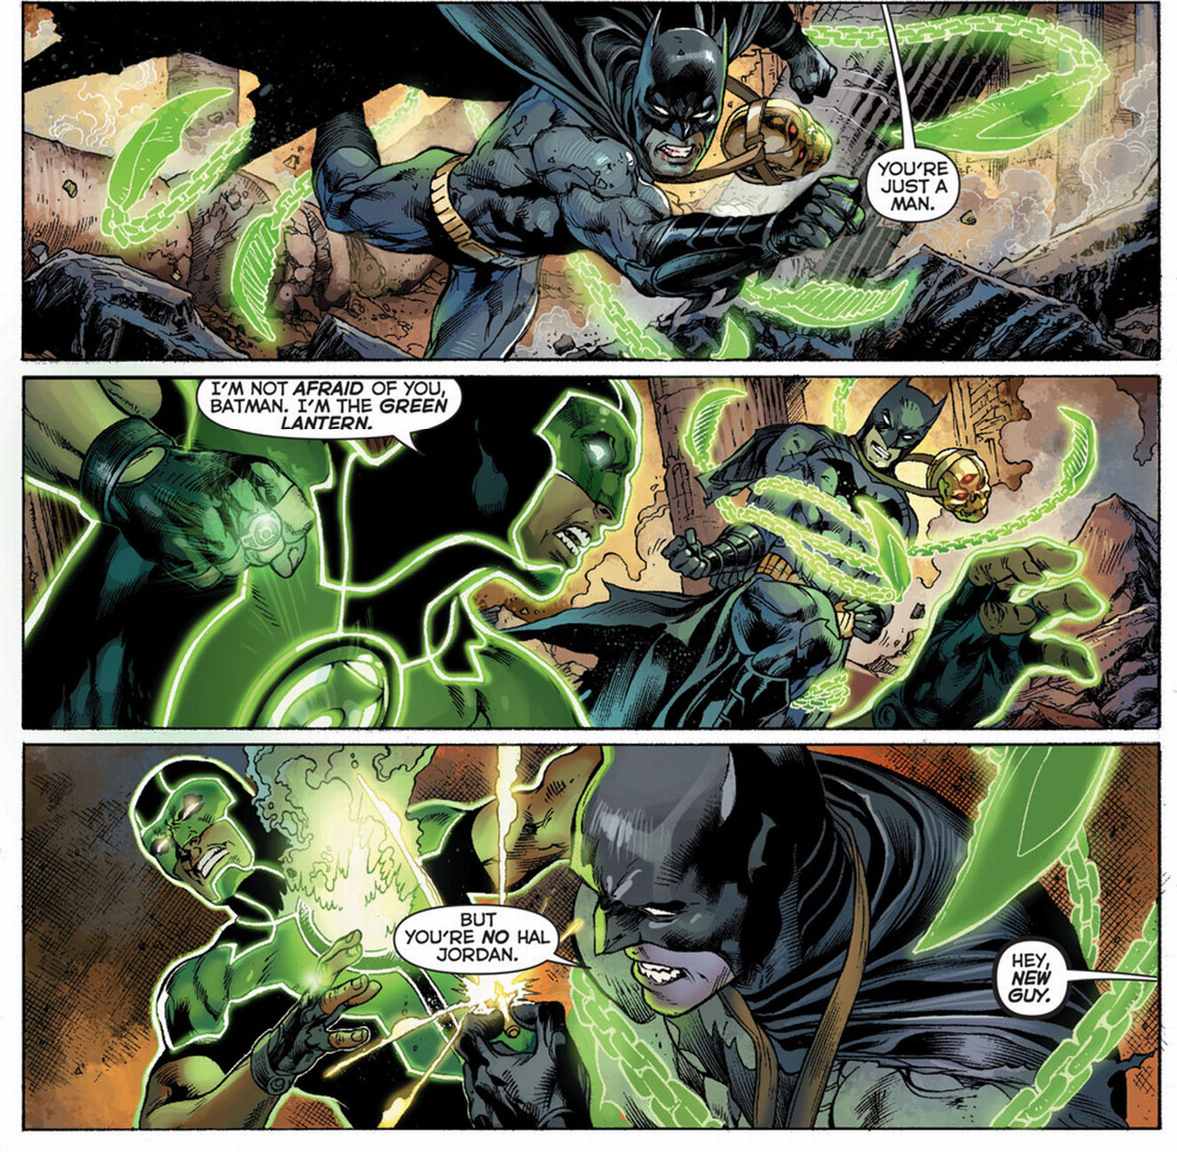 batman vs green lantern (simon baz)